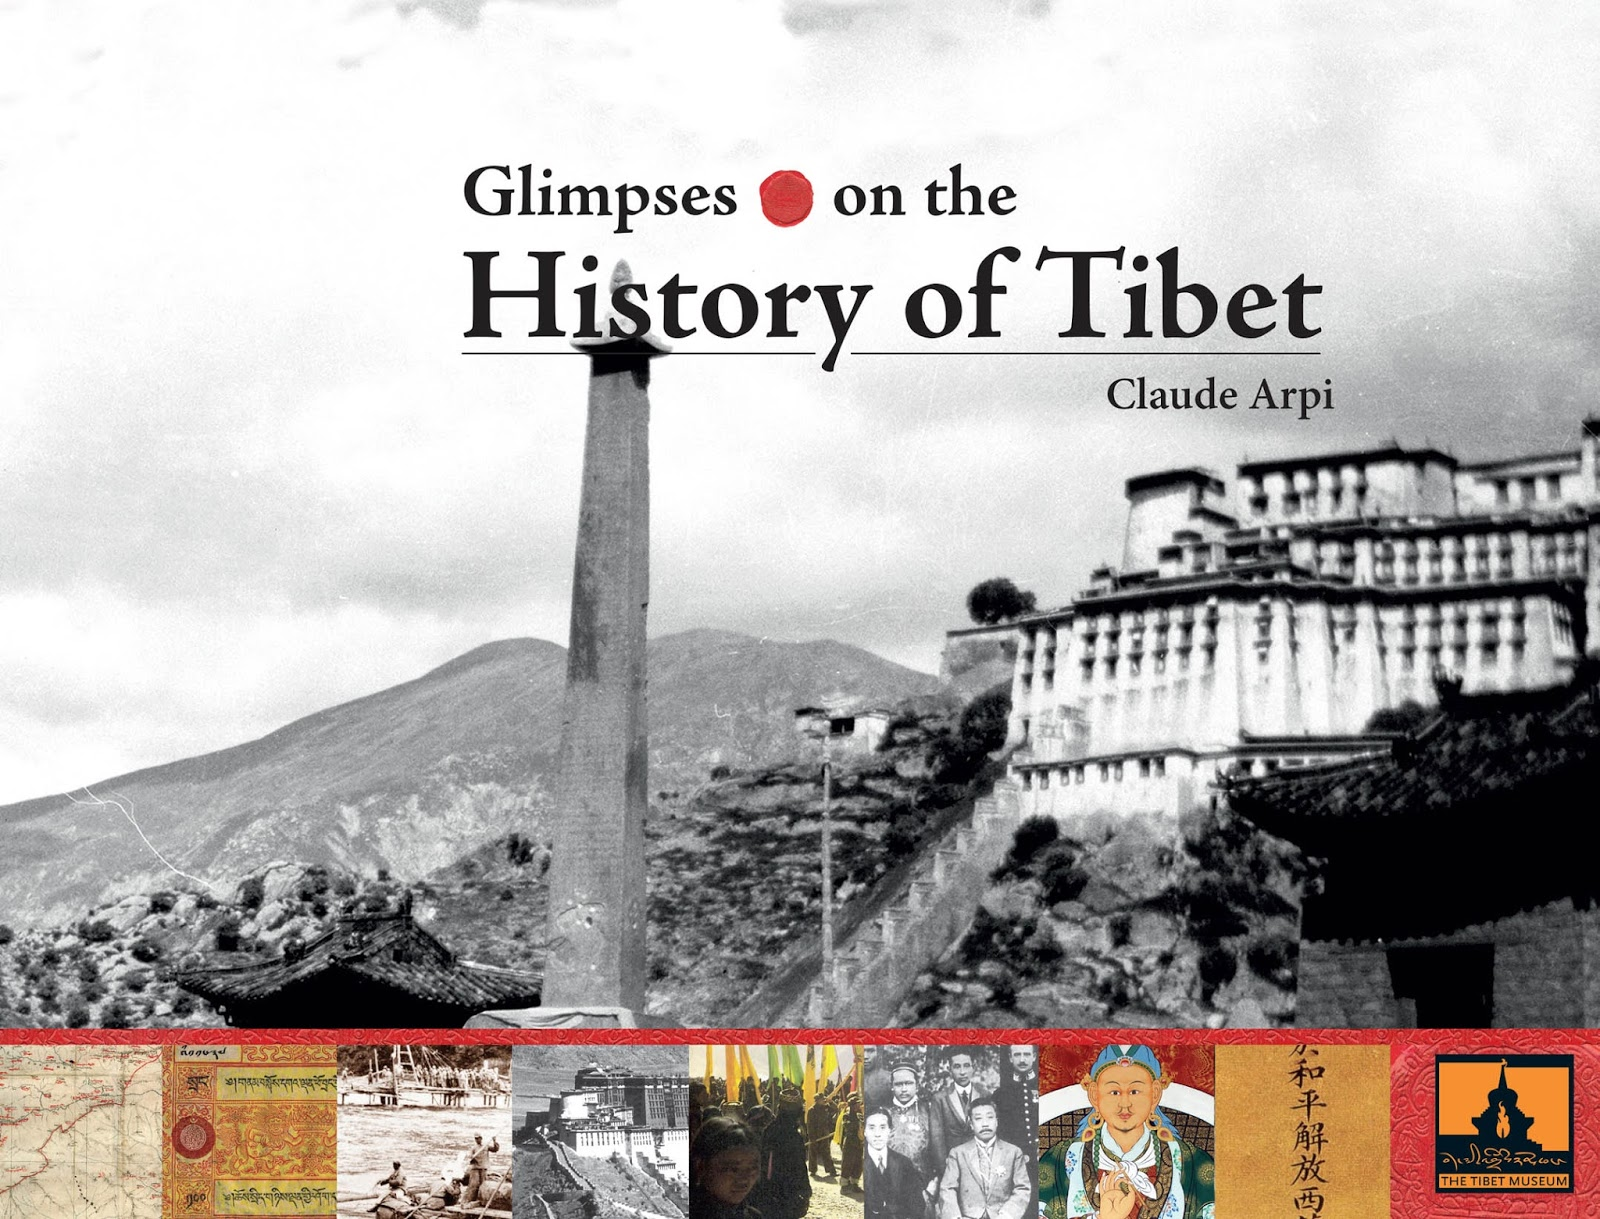 ... book glimpses on the history of tibet published by the tibet museum in